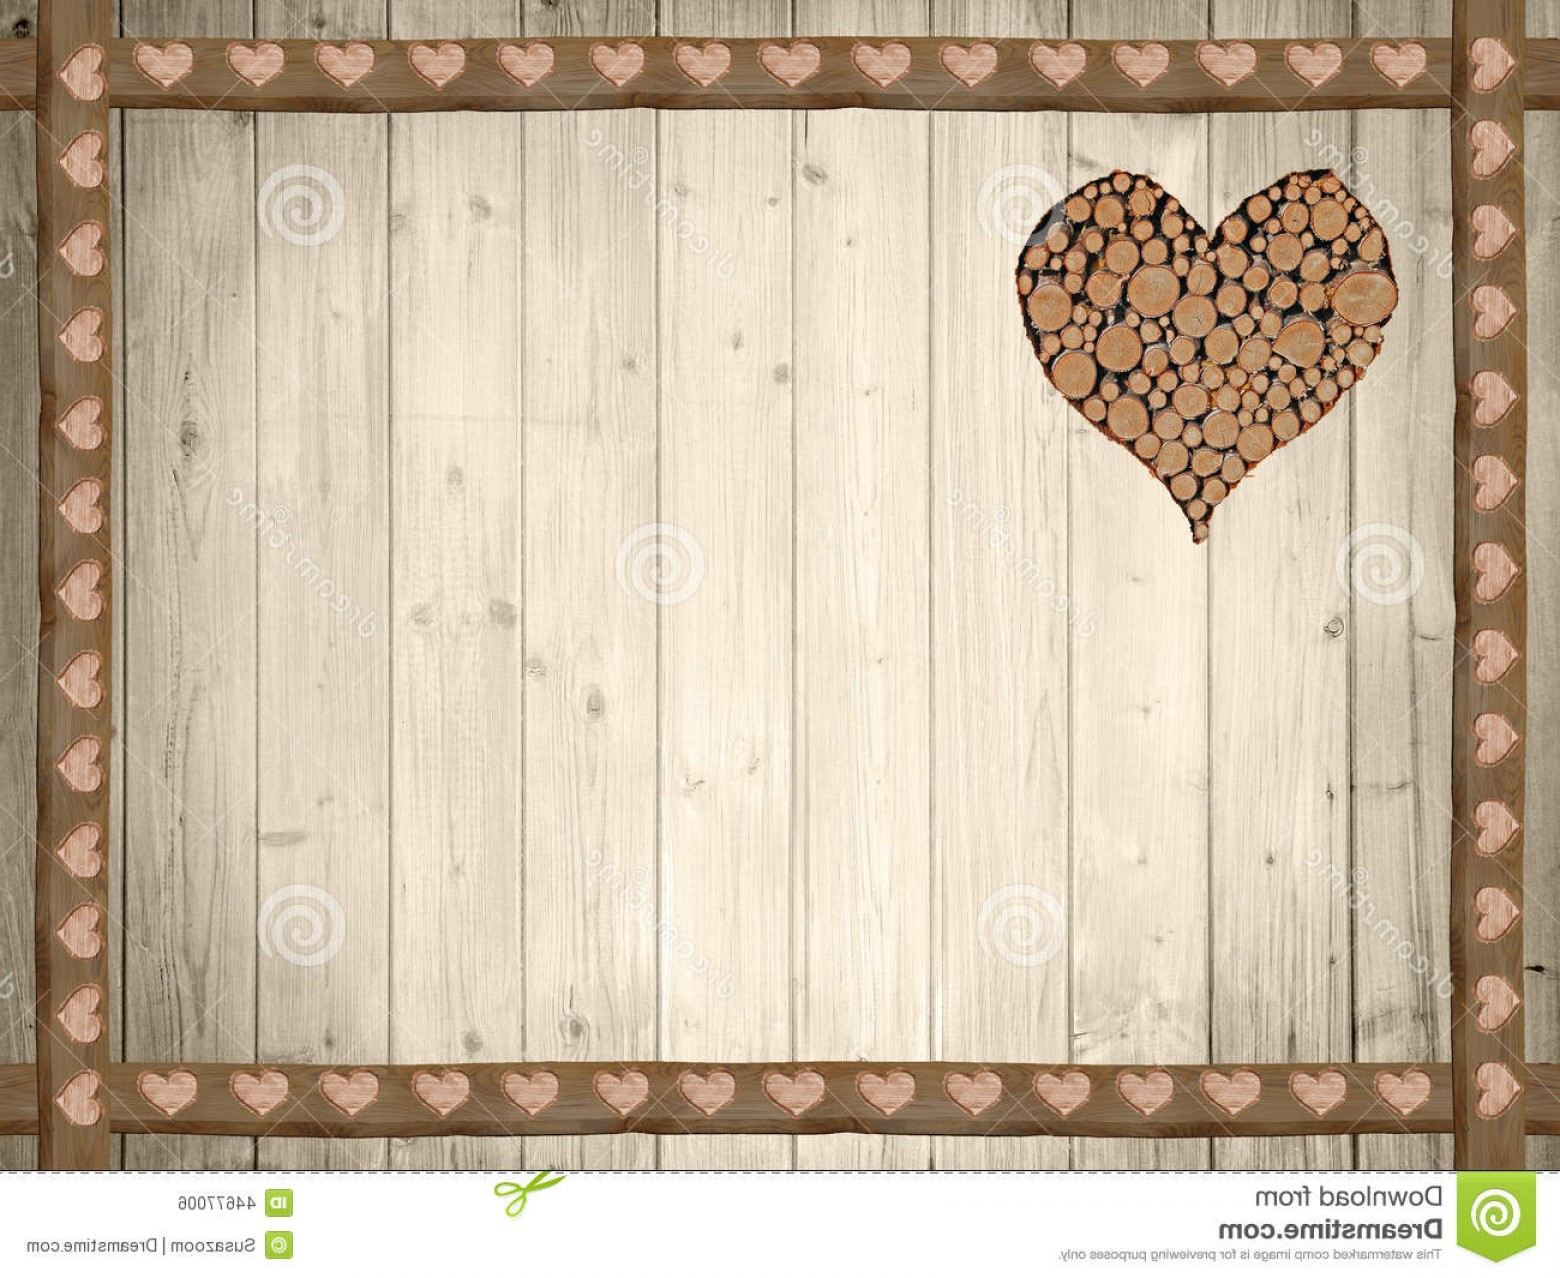 Wood clipart frameborder Border Kid Patterns Wood Patterns